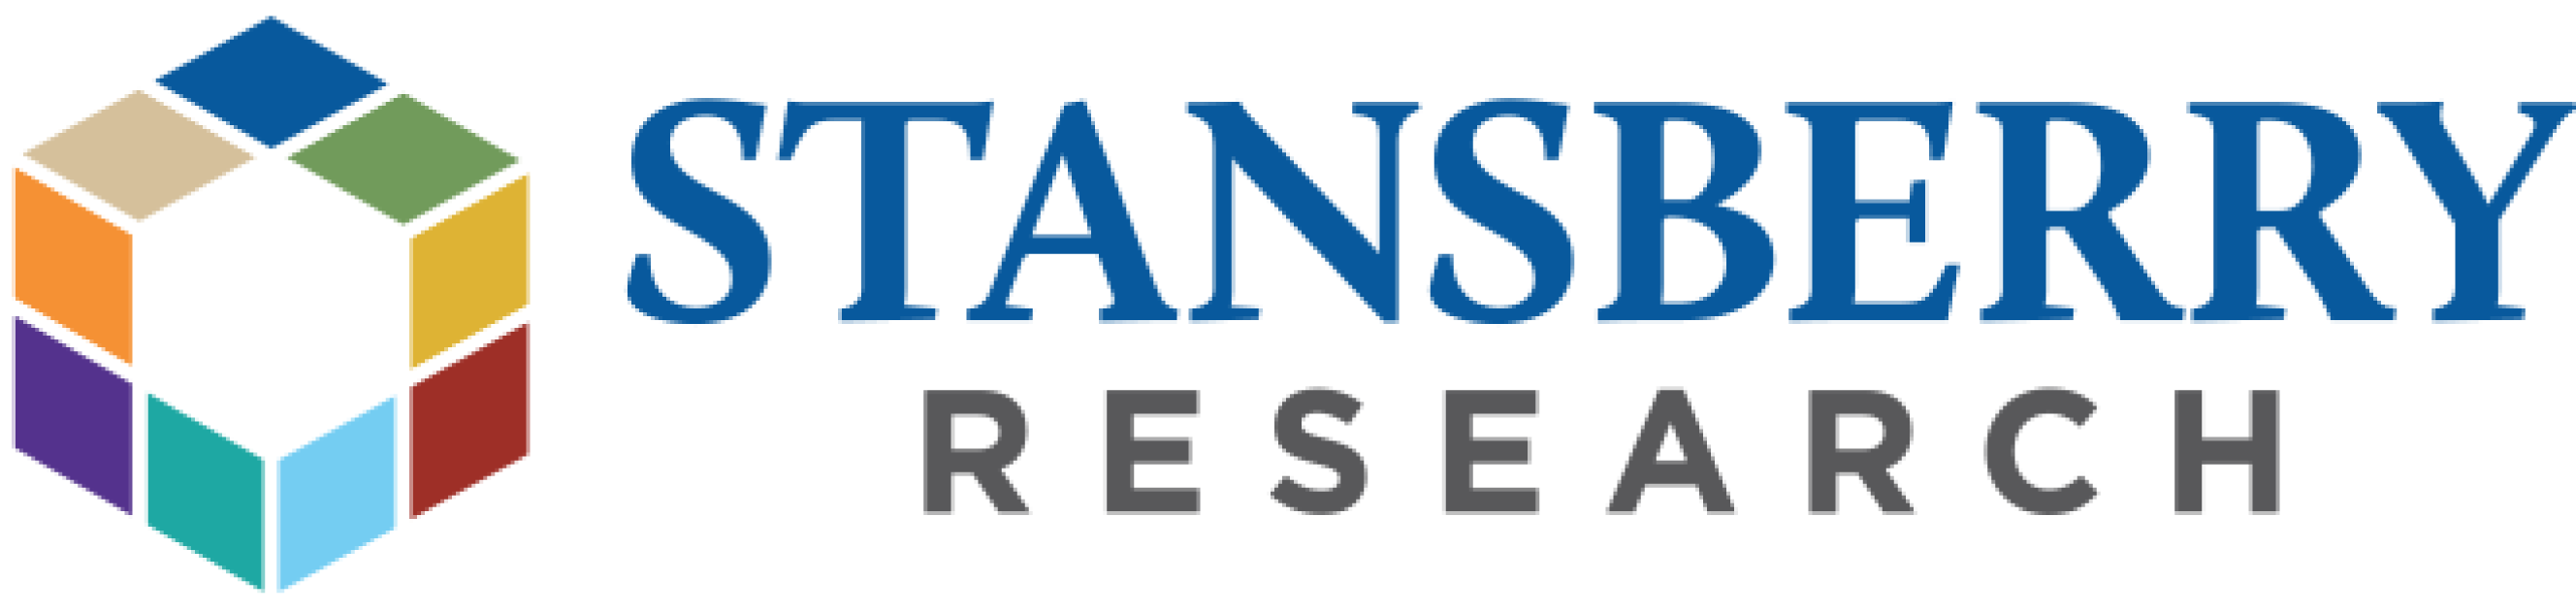 Stansberry Research Logo